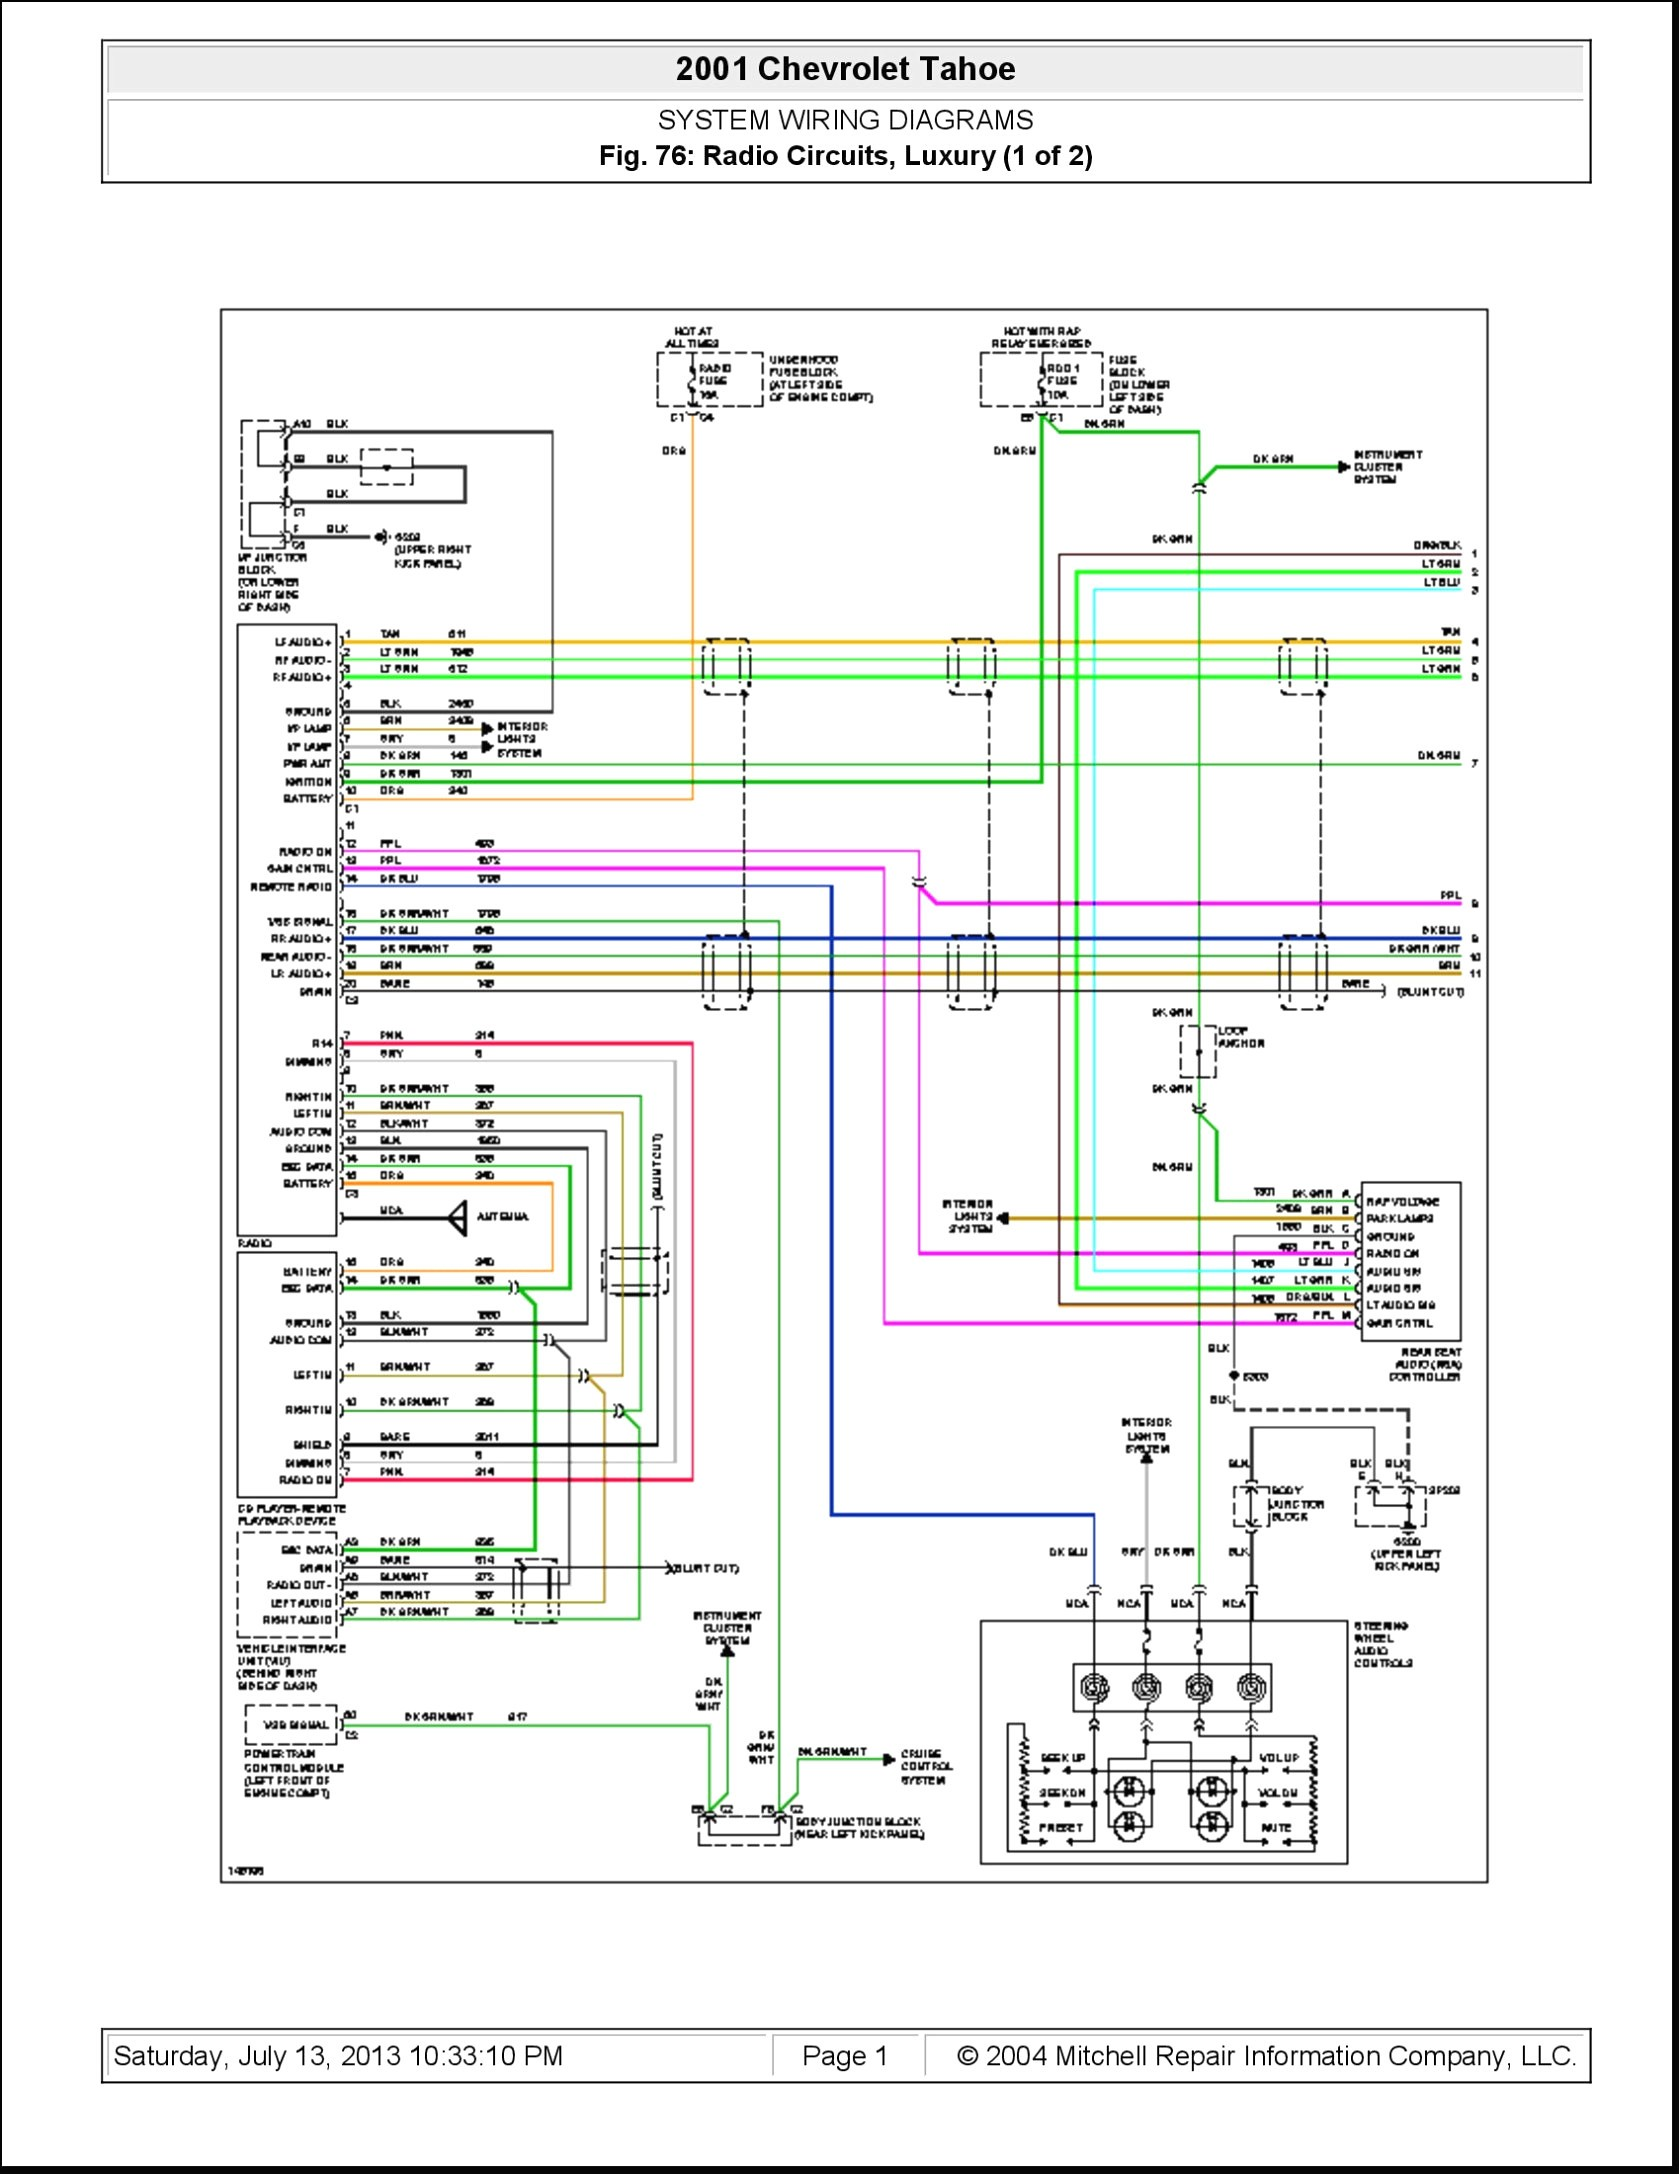 2001 Chevy Impala Radio Wiring Diagram Part 9 Wiring Circuit Drawings are Useful when Working On Wiring Of 2001 Chevy Impala Radio Wiring Diagram